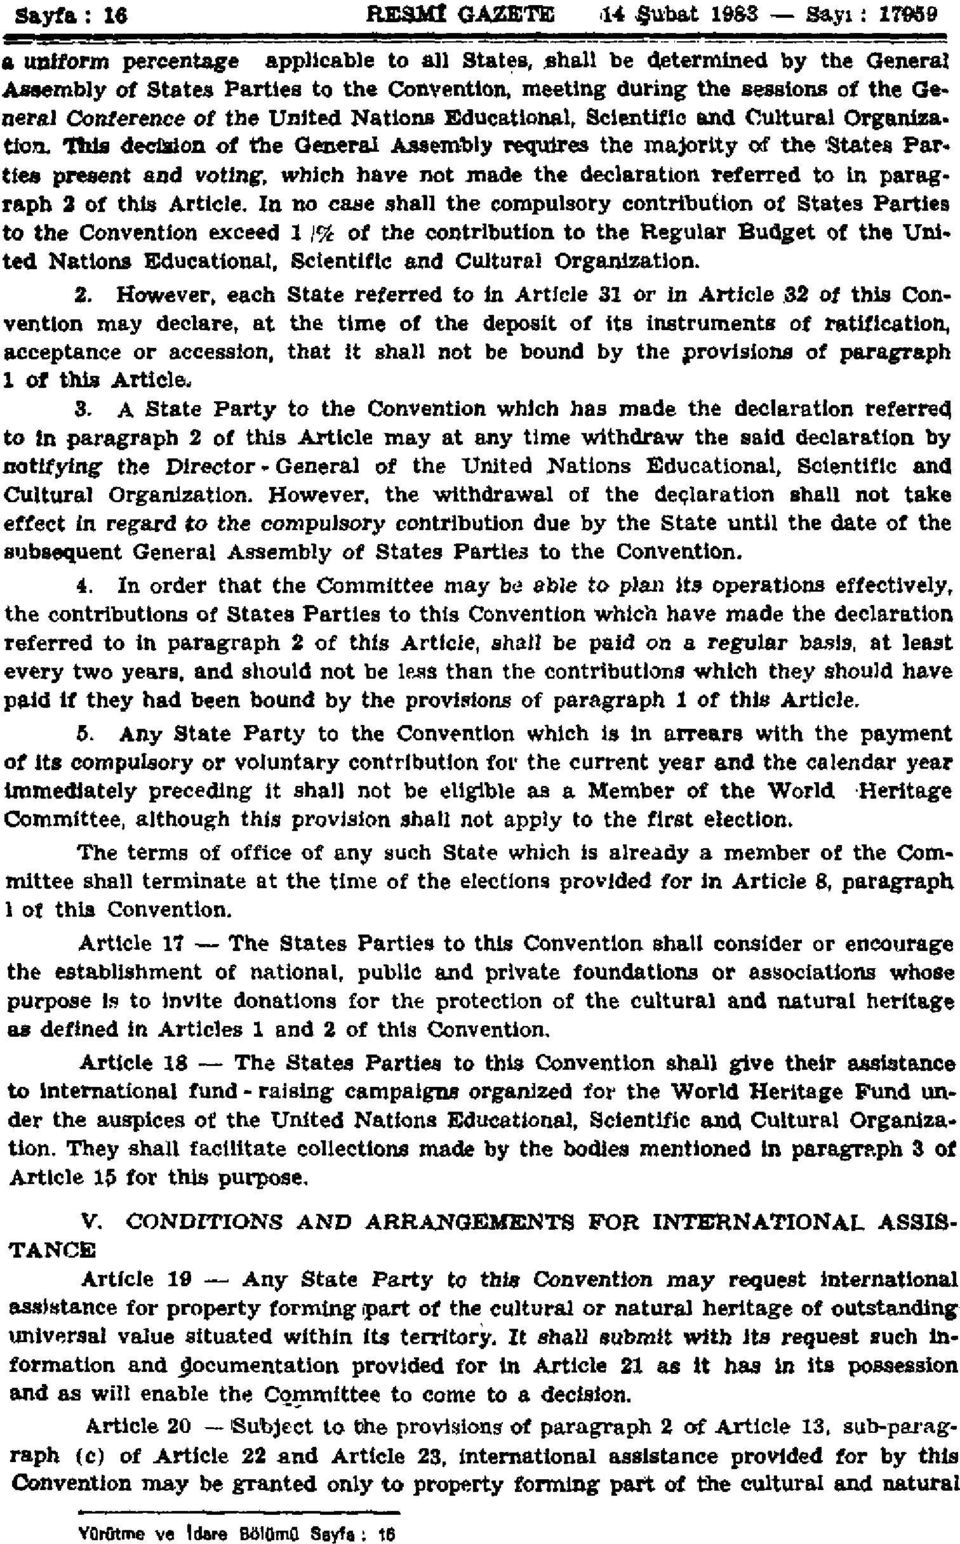 This decision of the General Assembly requires the majority of the States Parties present and voting, which have not made the declaration referred to in paragraph 2 of this Article.